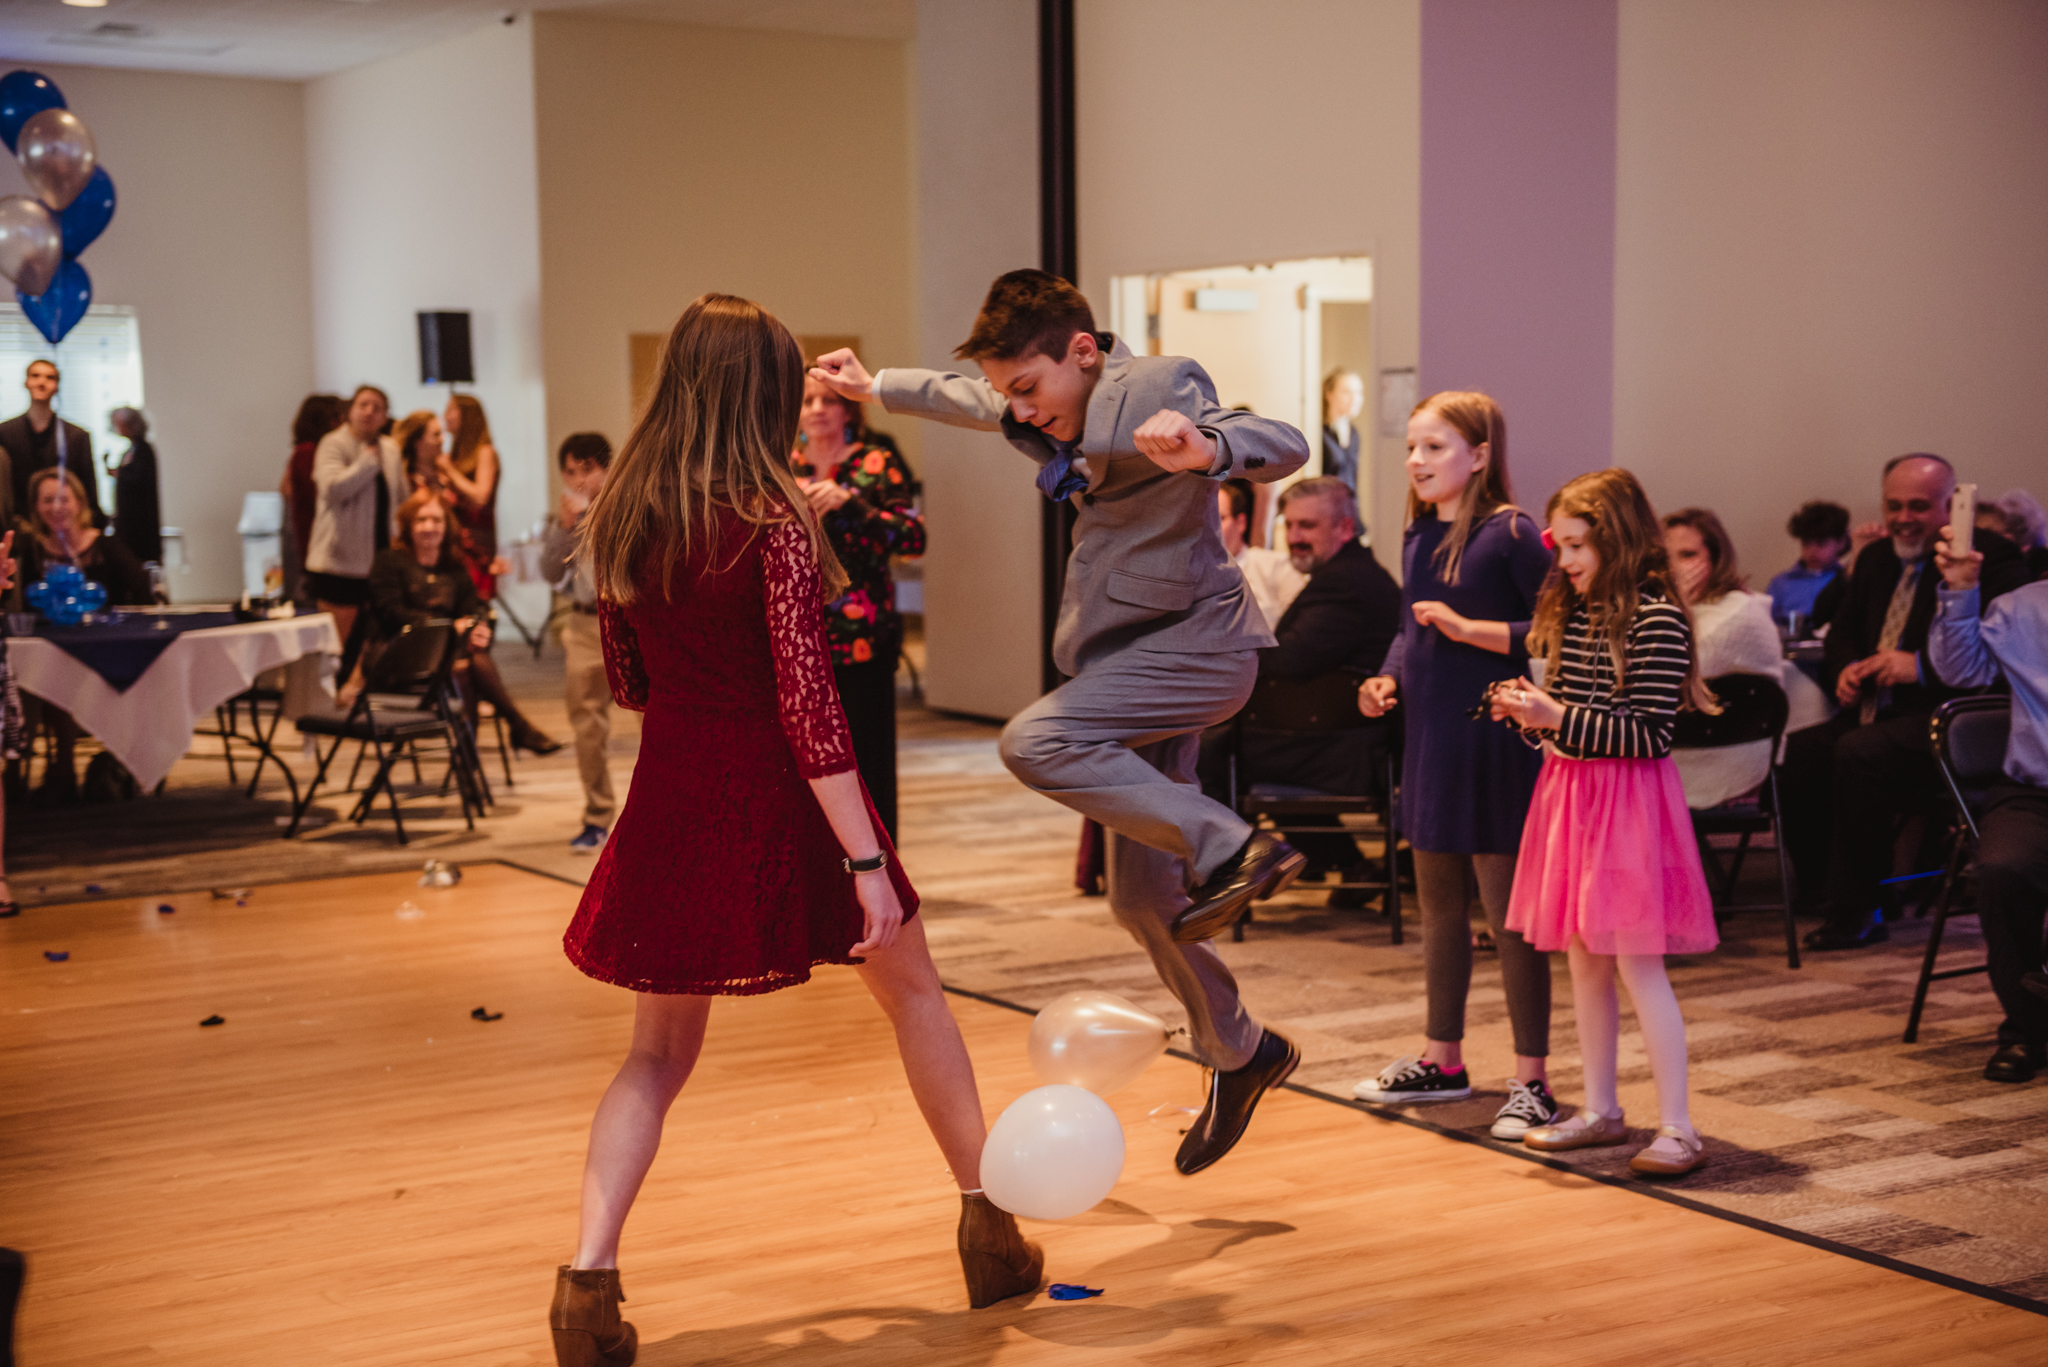 Noah tries to pop someone else's balloon during a bar mitzvah game at Temple Beth Or in Raleigh.